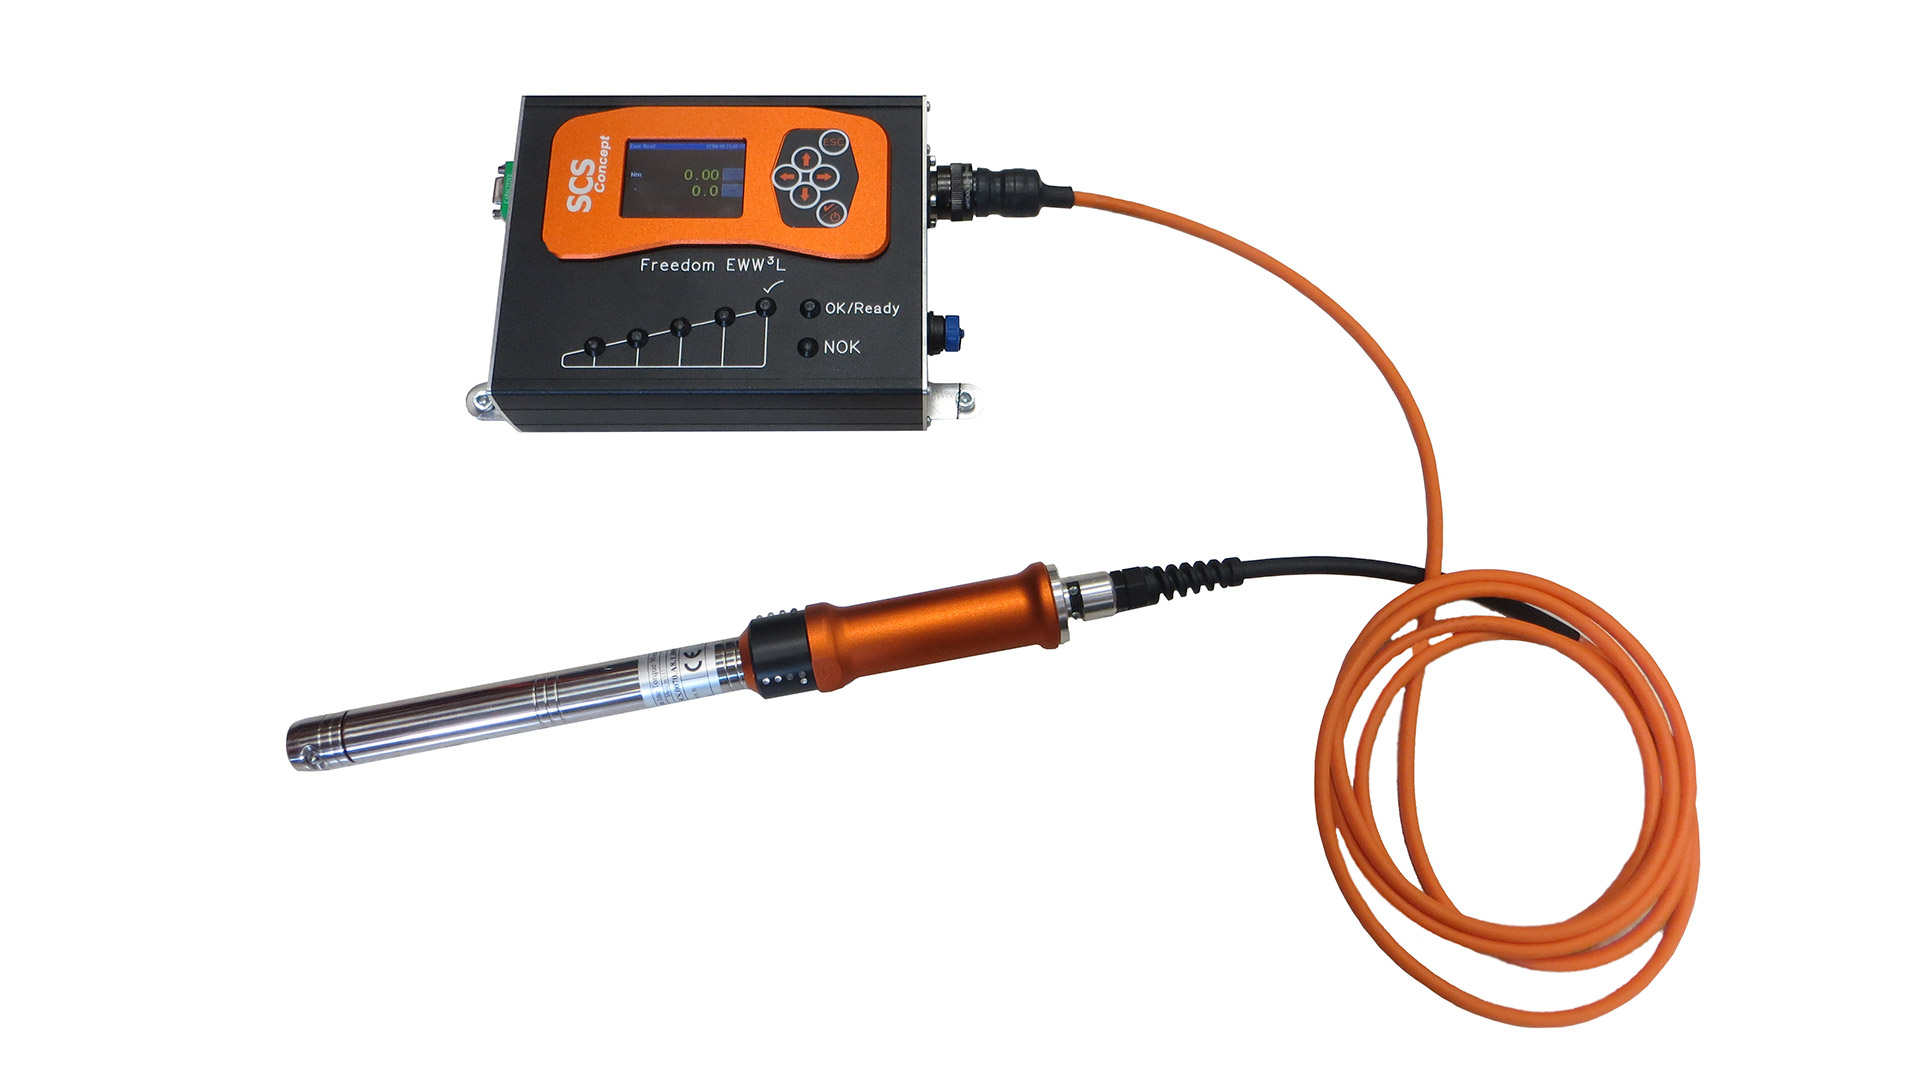 Digital torque wrench for production